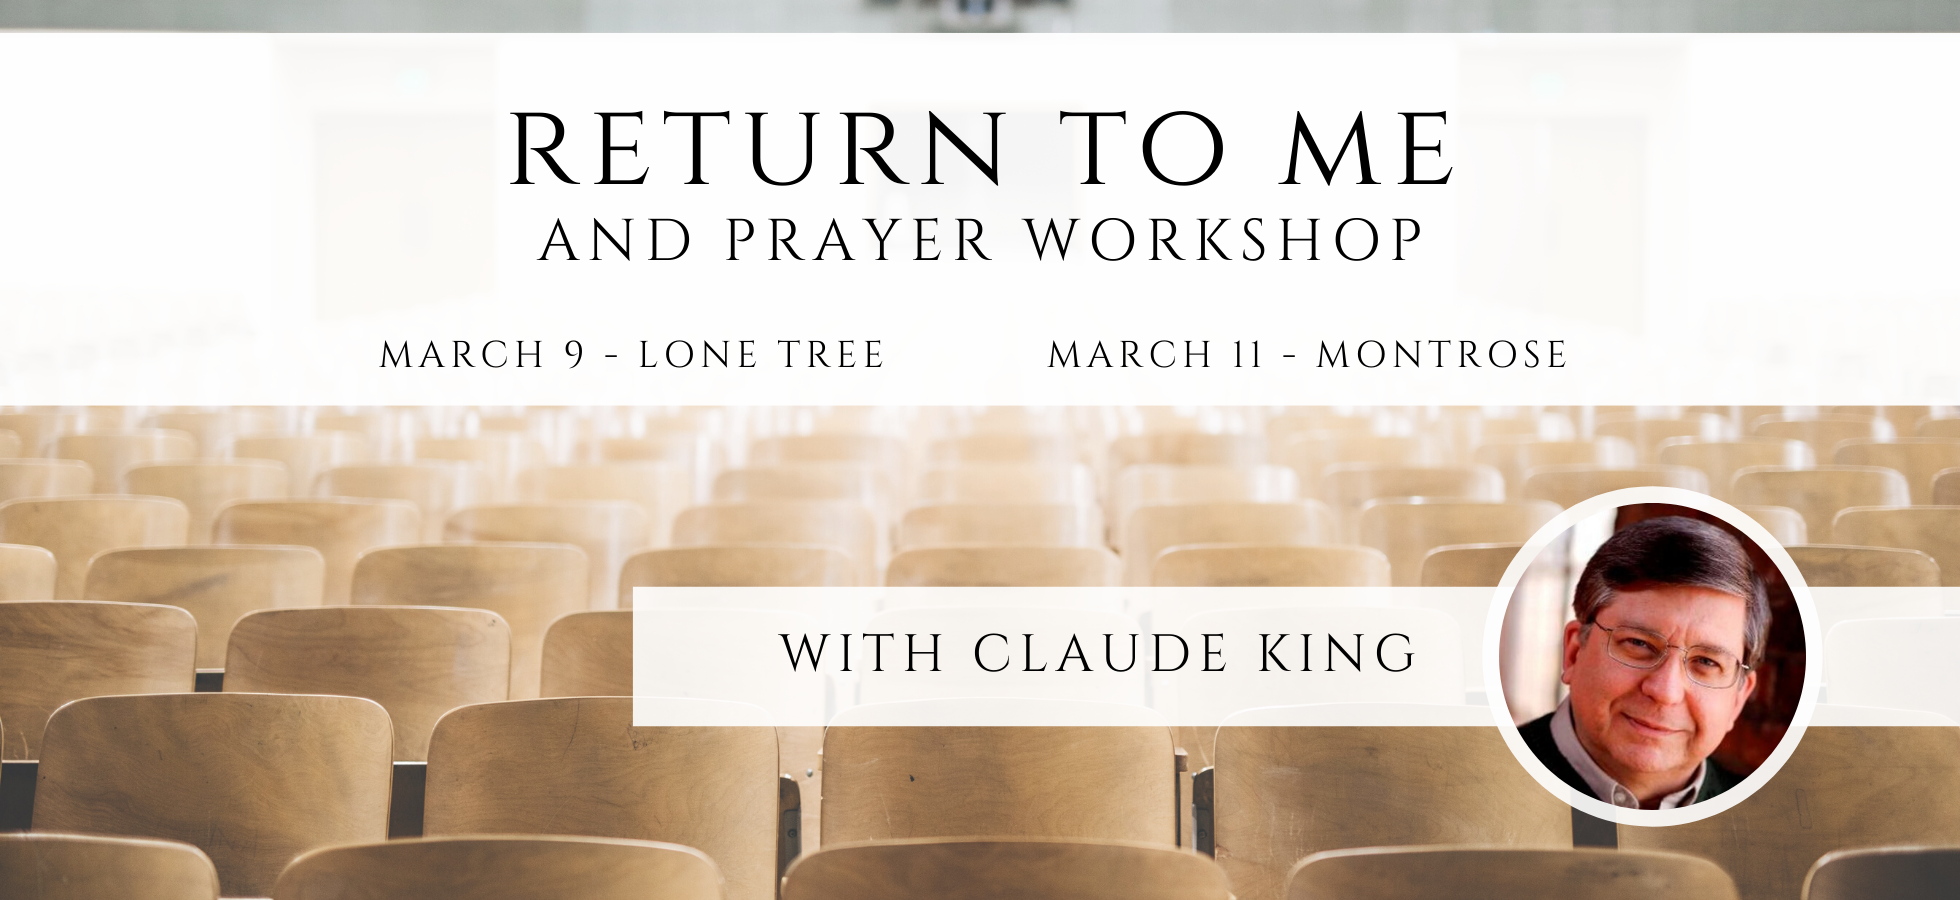 Workshops with Claude King